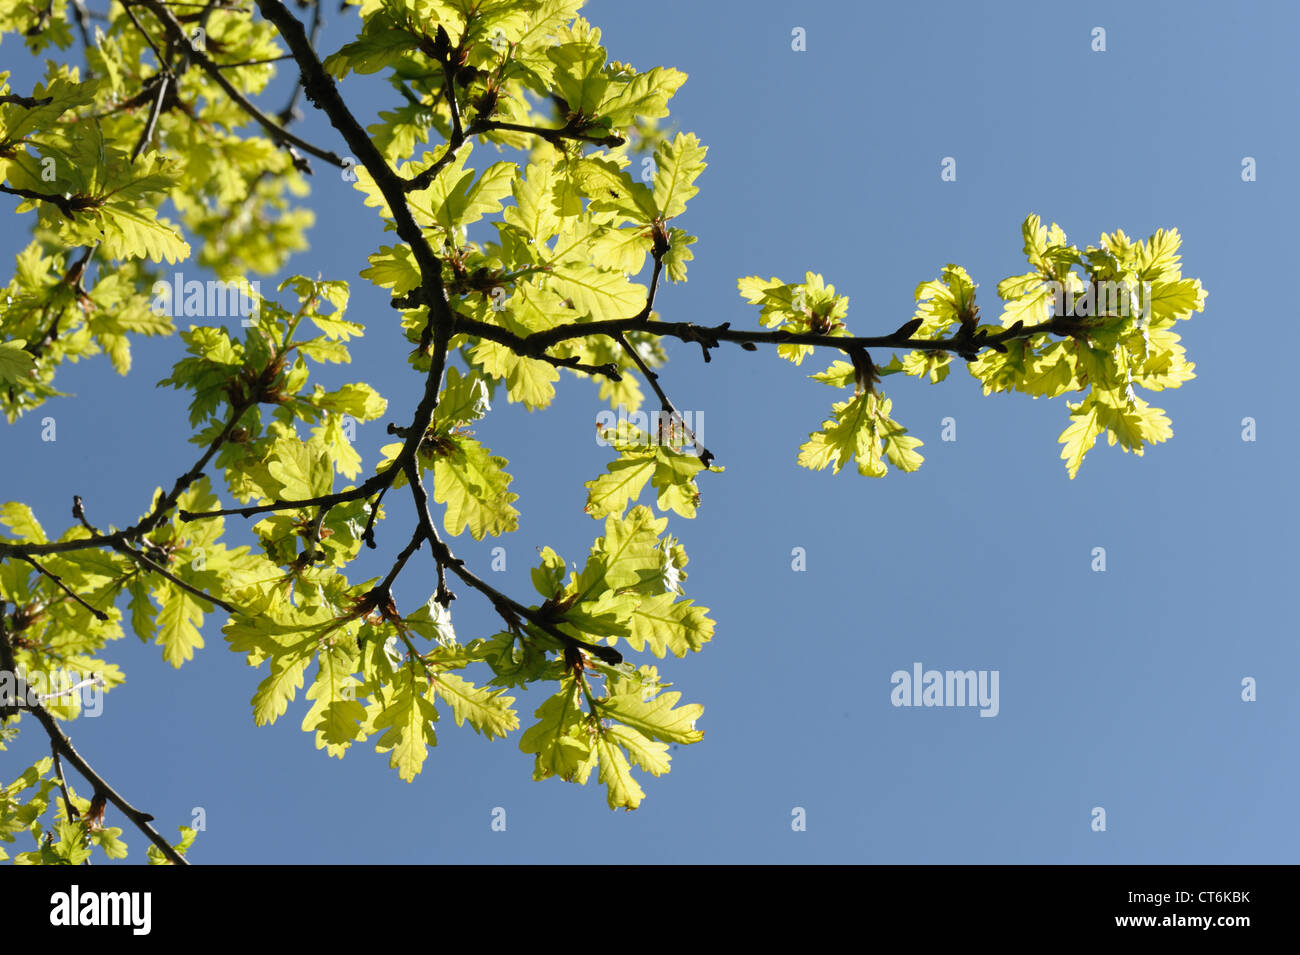 Young oak tree (Quercus robur) foliage backlit against against a blue spring sky - Stock Image